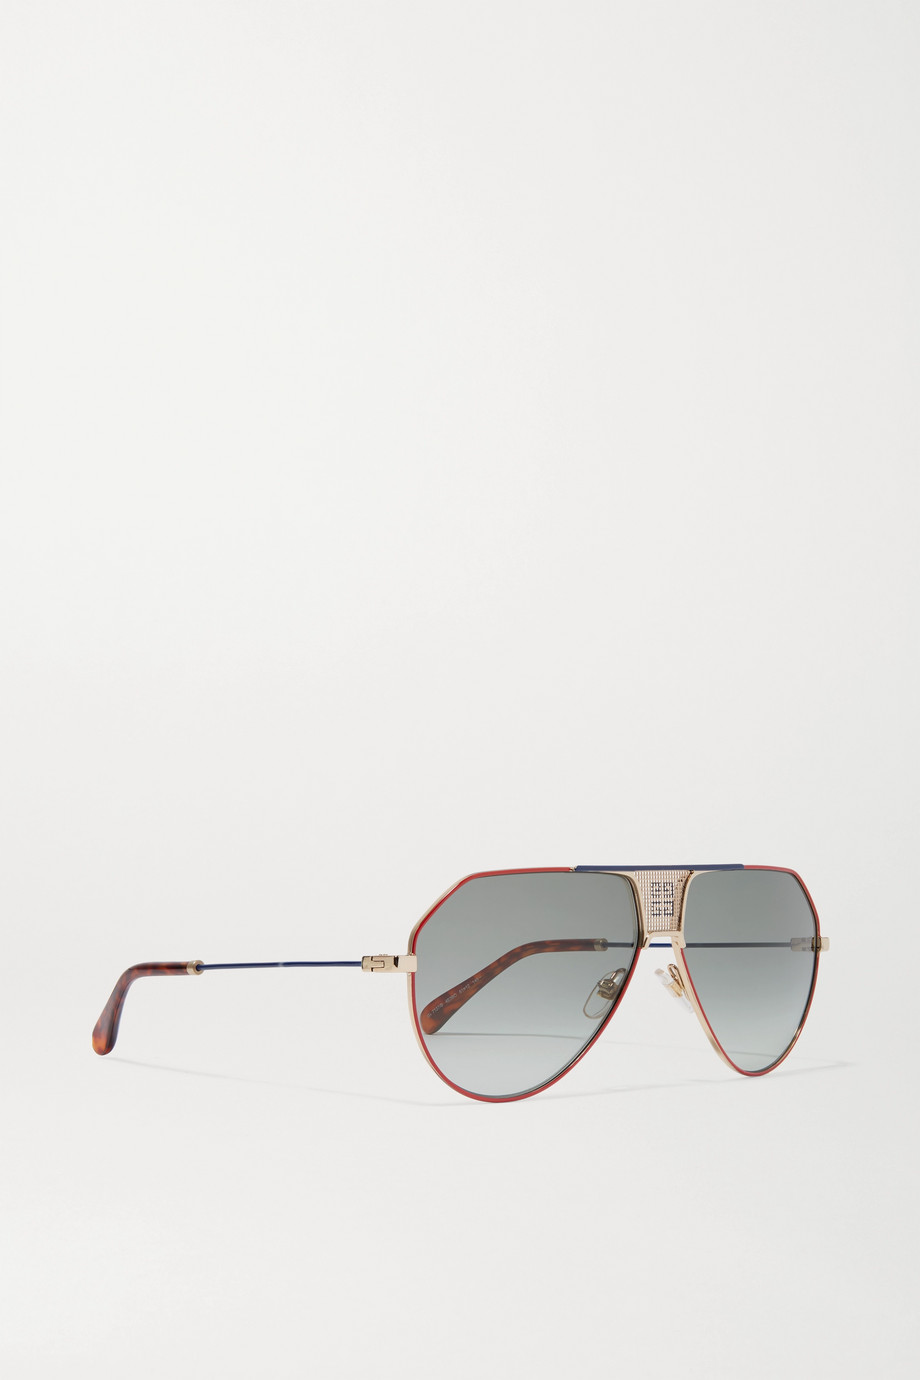 Givenchy Oversized aviator-style metal and tortoiseshell acetate sunglasses